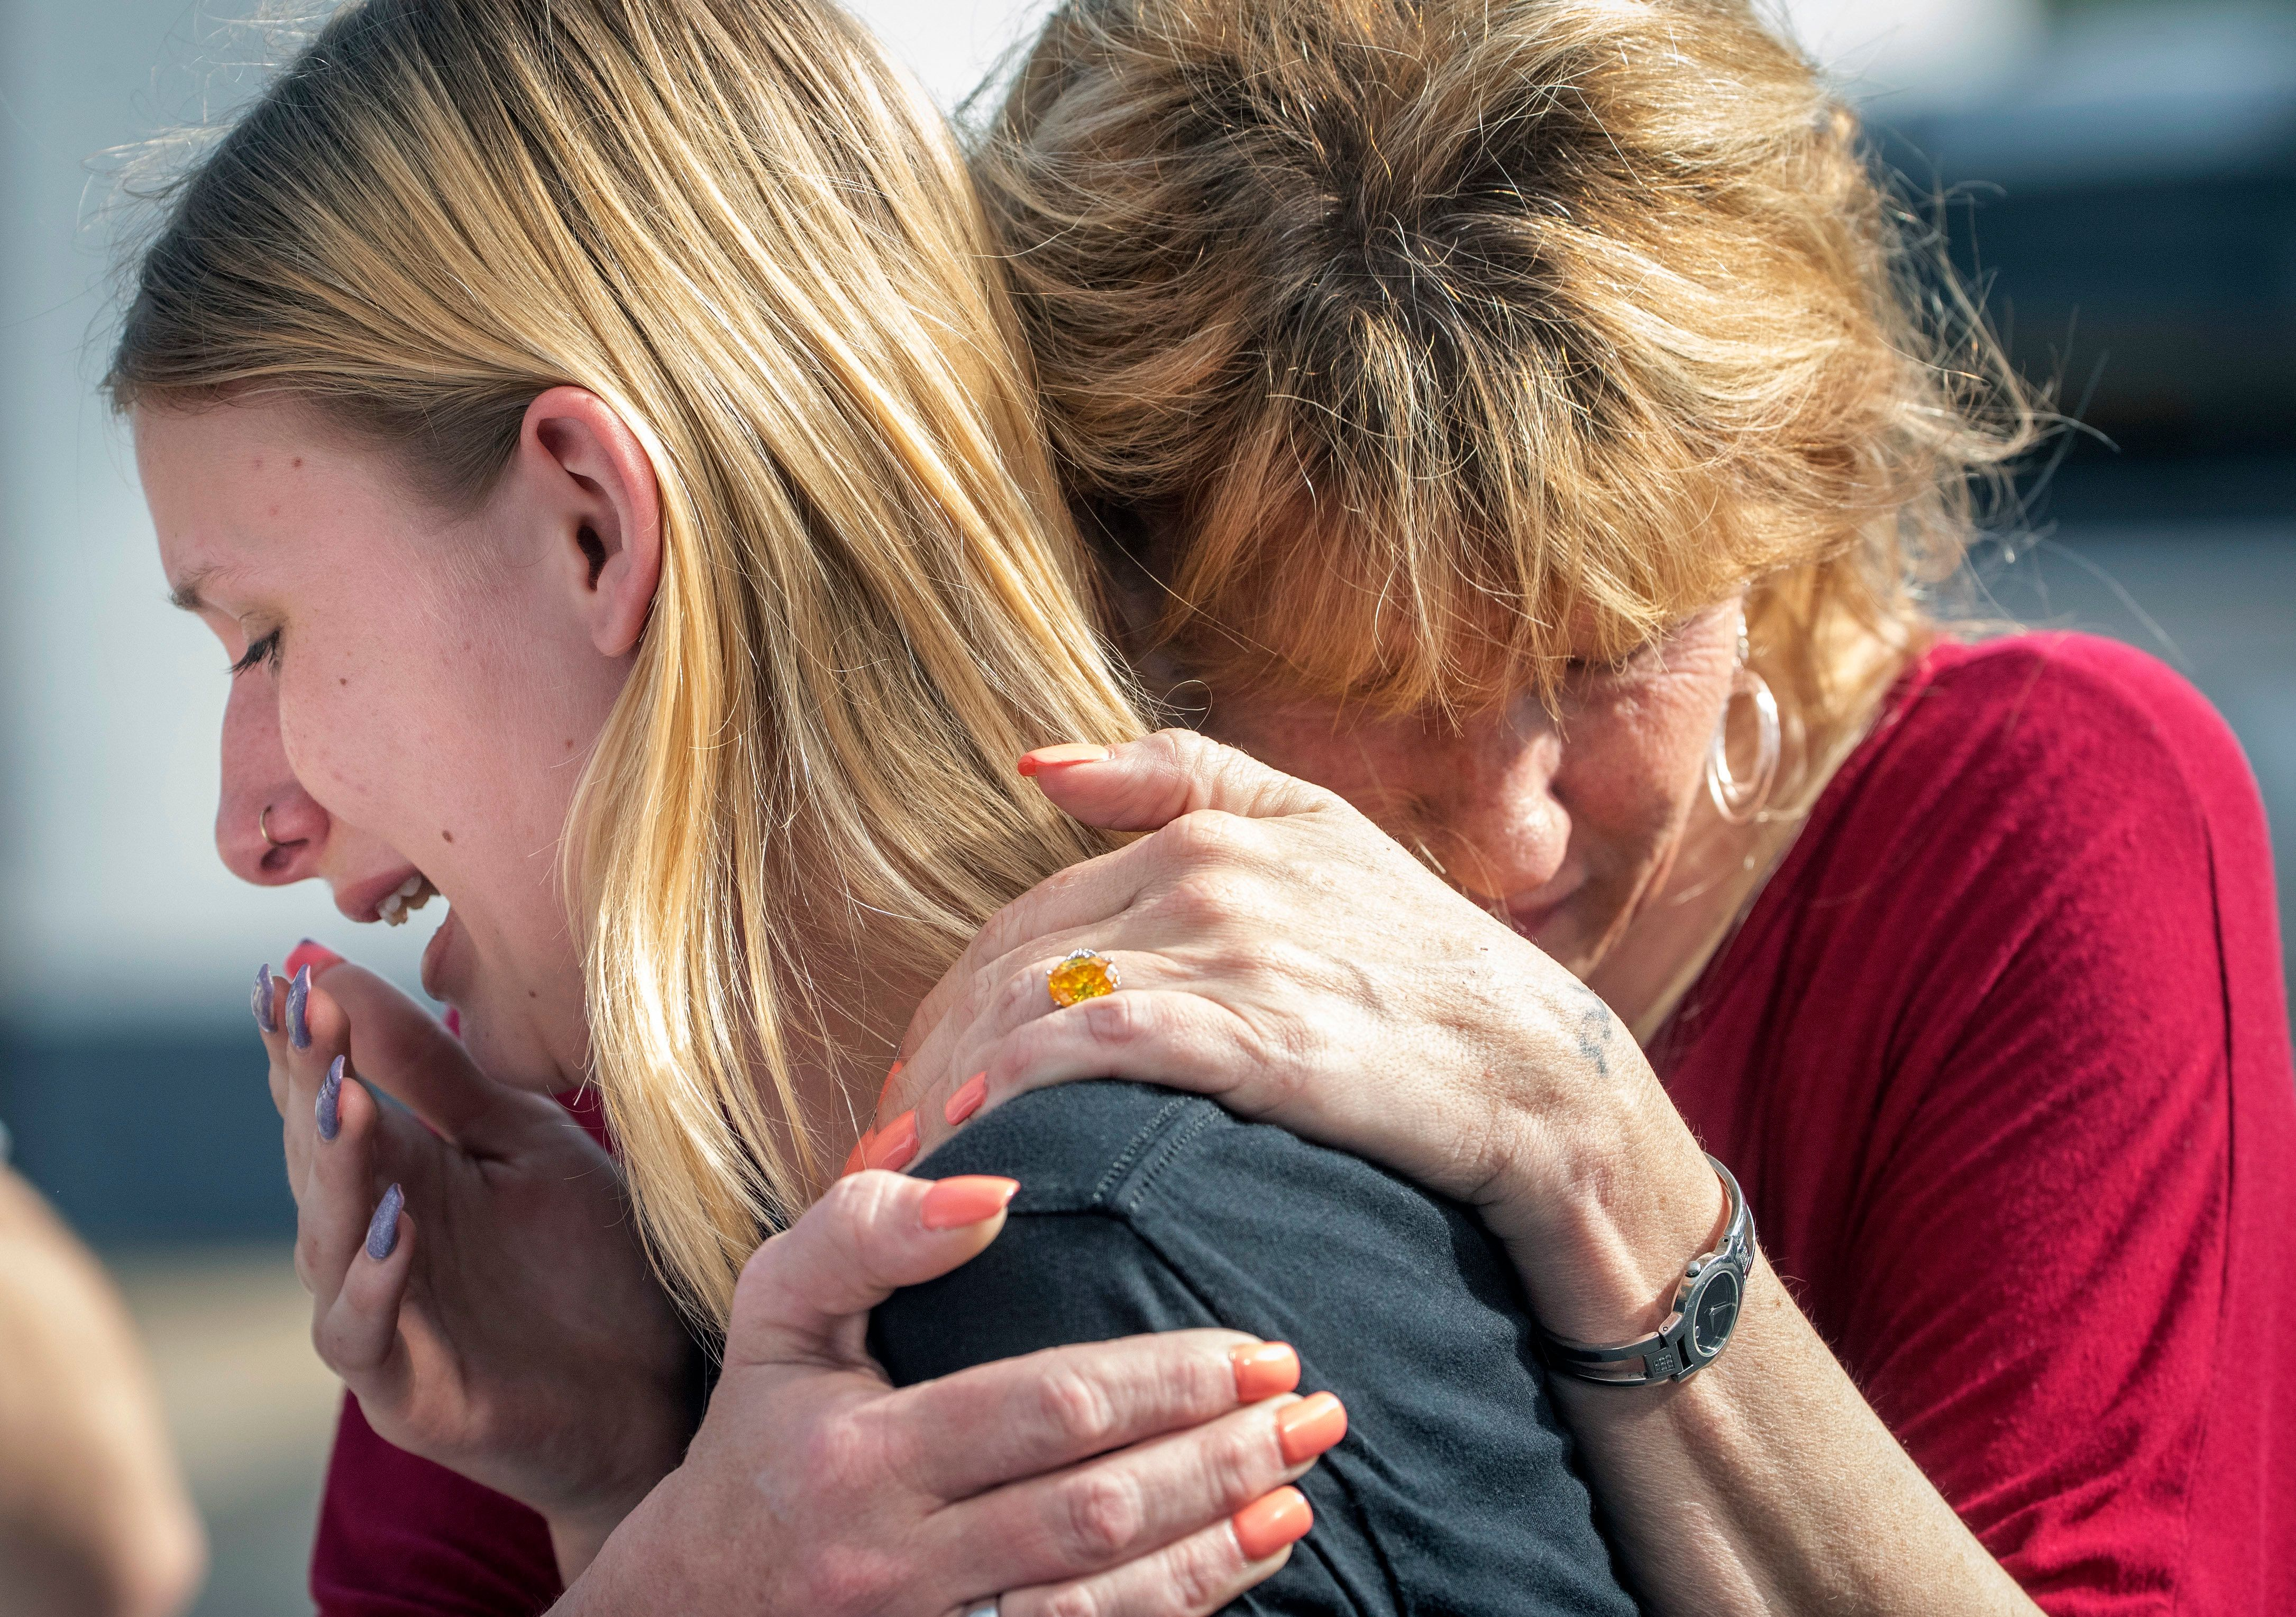 Santa Fe High School student Dakota Shrader is comforted by her mother Susan Davidson following a shooting at the school on F